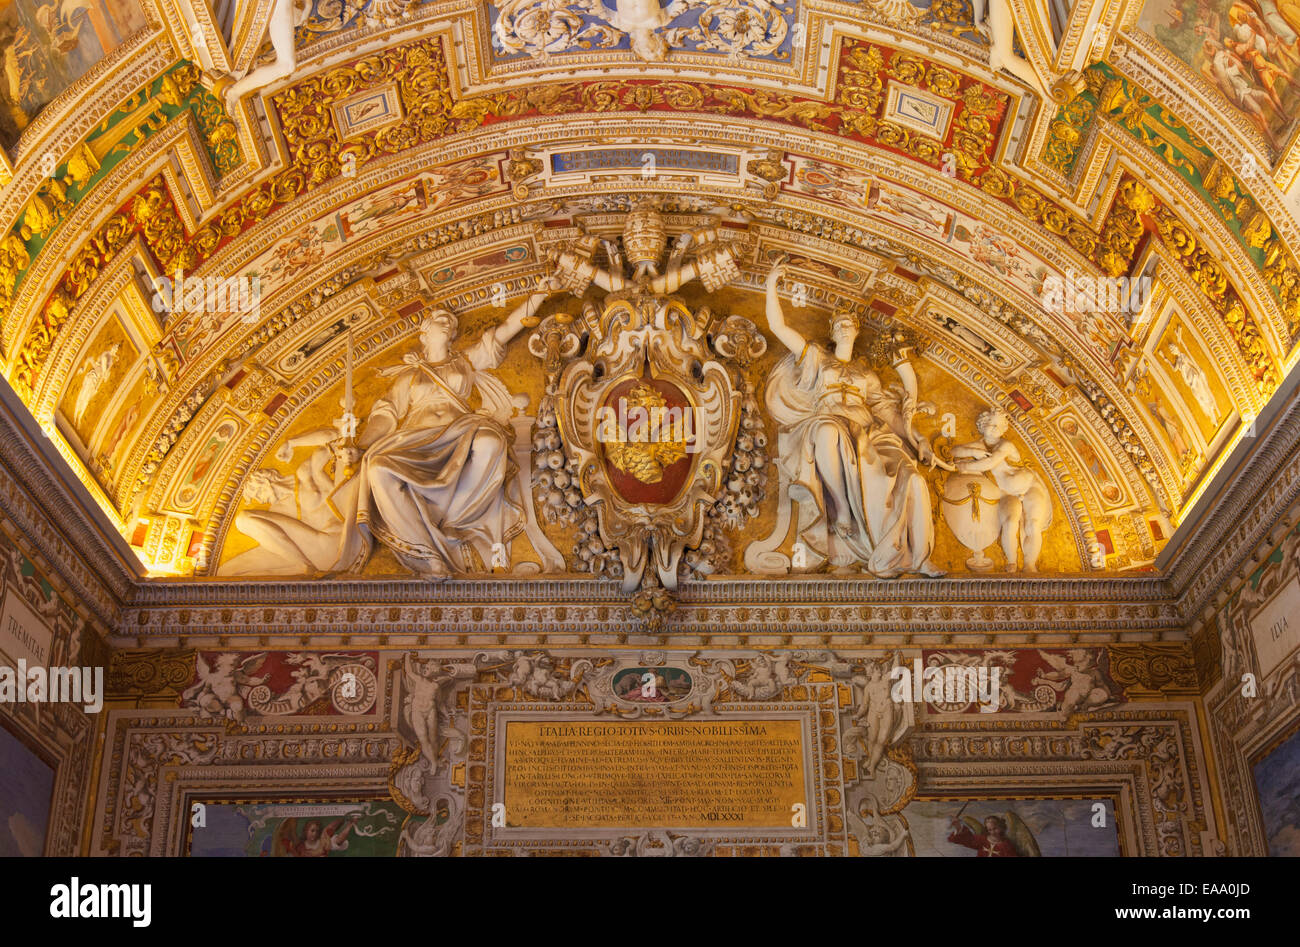 Ceiling of gallery of maps inside vatican museum unesco world stock ceiling of gallery of maps inside vatican museum unesco world heritage site vatican city rome italy gumiabroncs Gallery